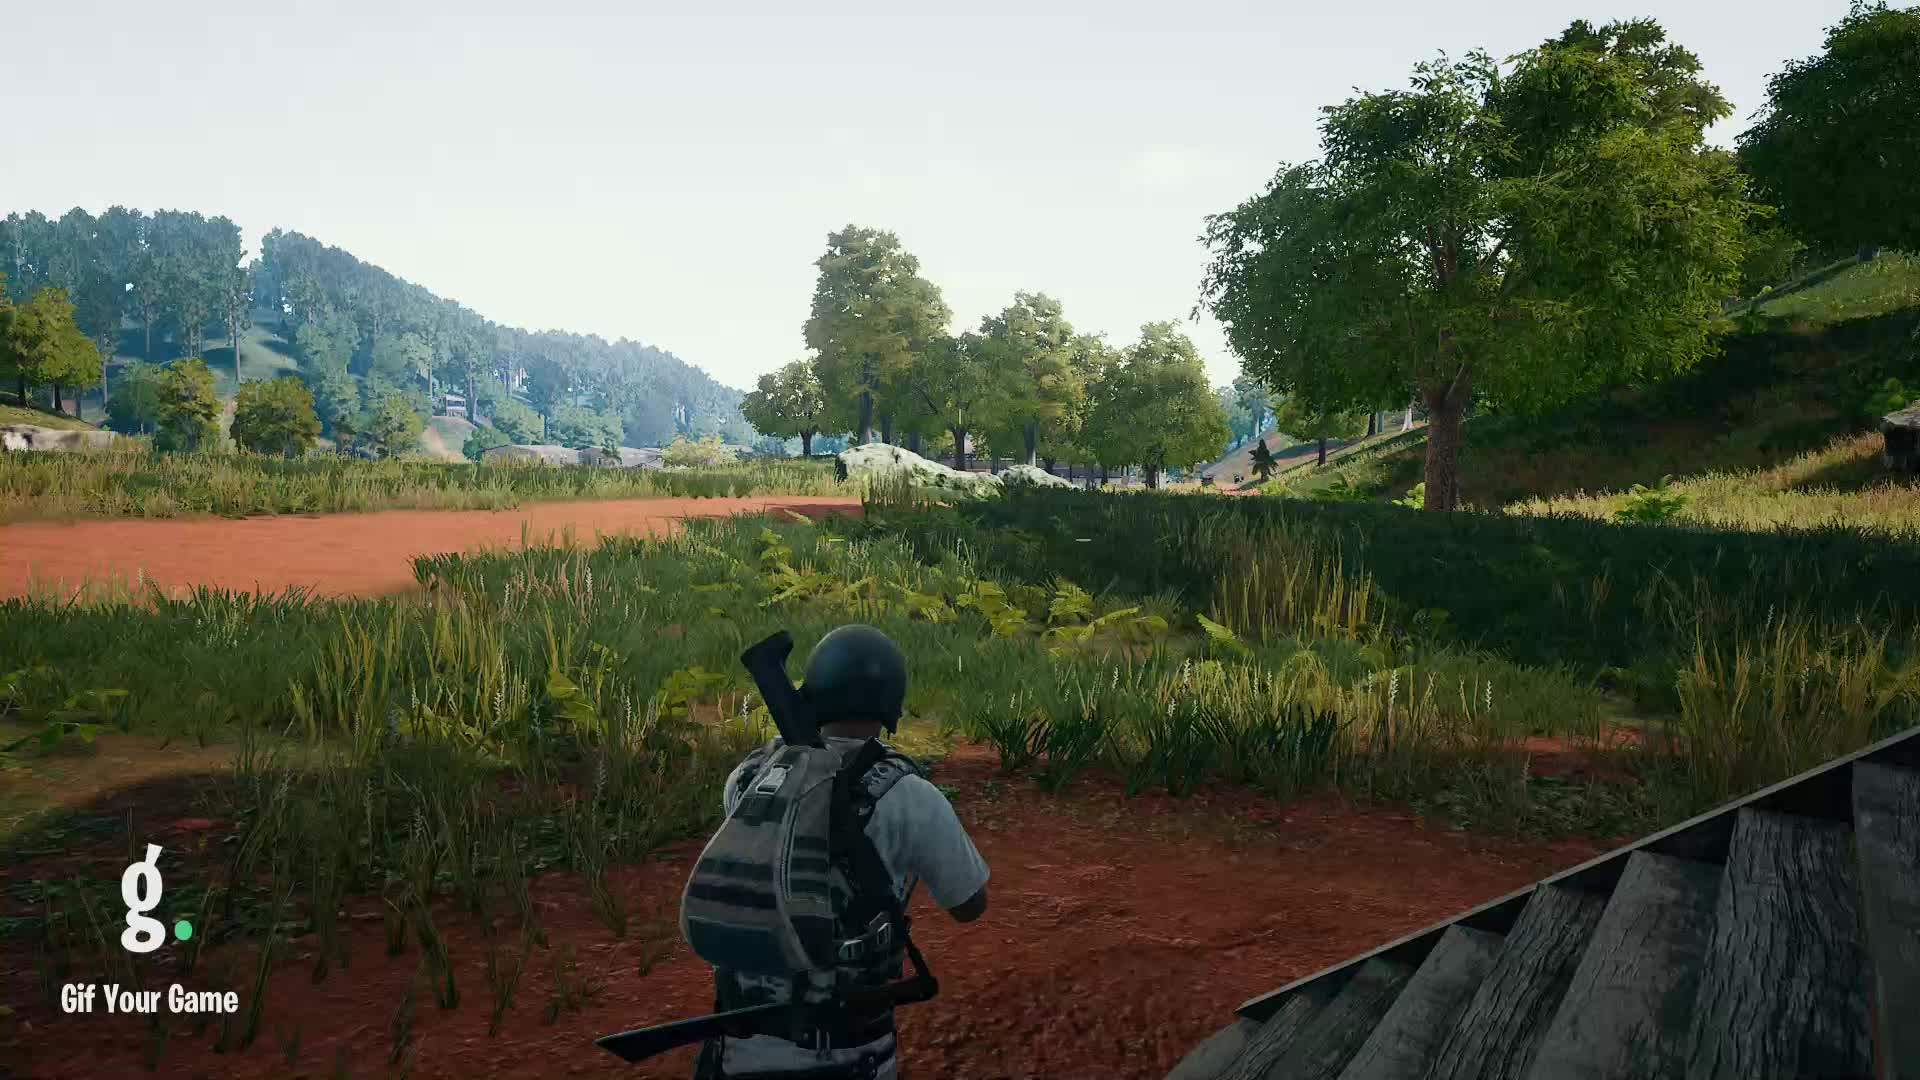 Gif Your Game, GifYourGame, PUBATTLEGROUNDS, pubg, gifyourgame killed by FortaRomaniei GIFs